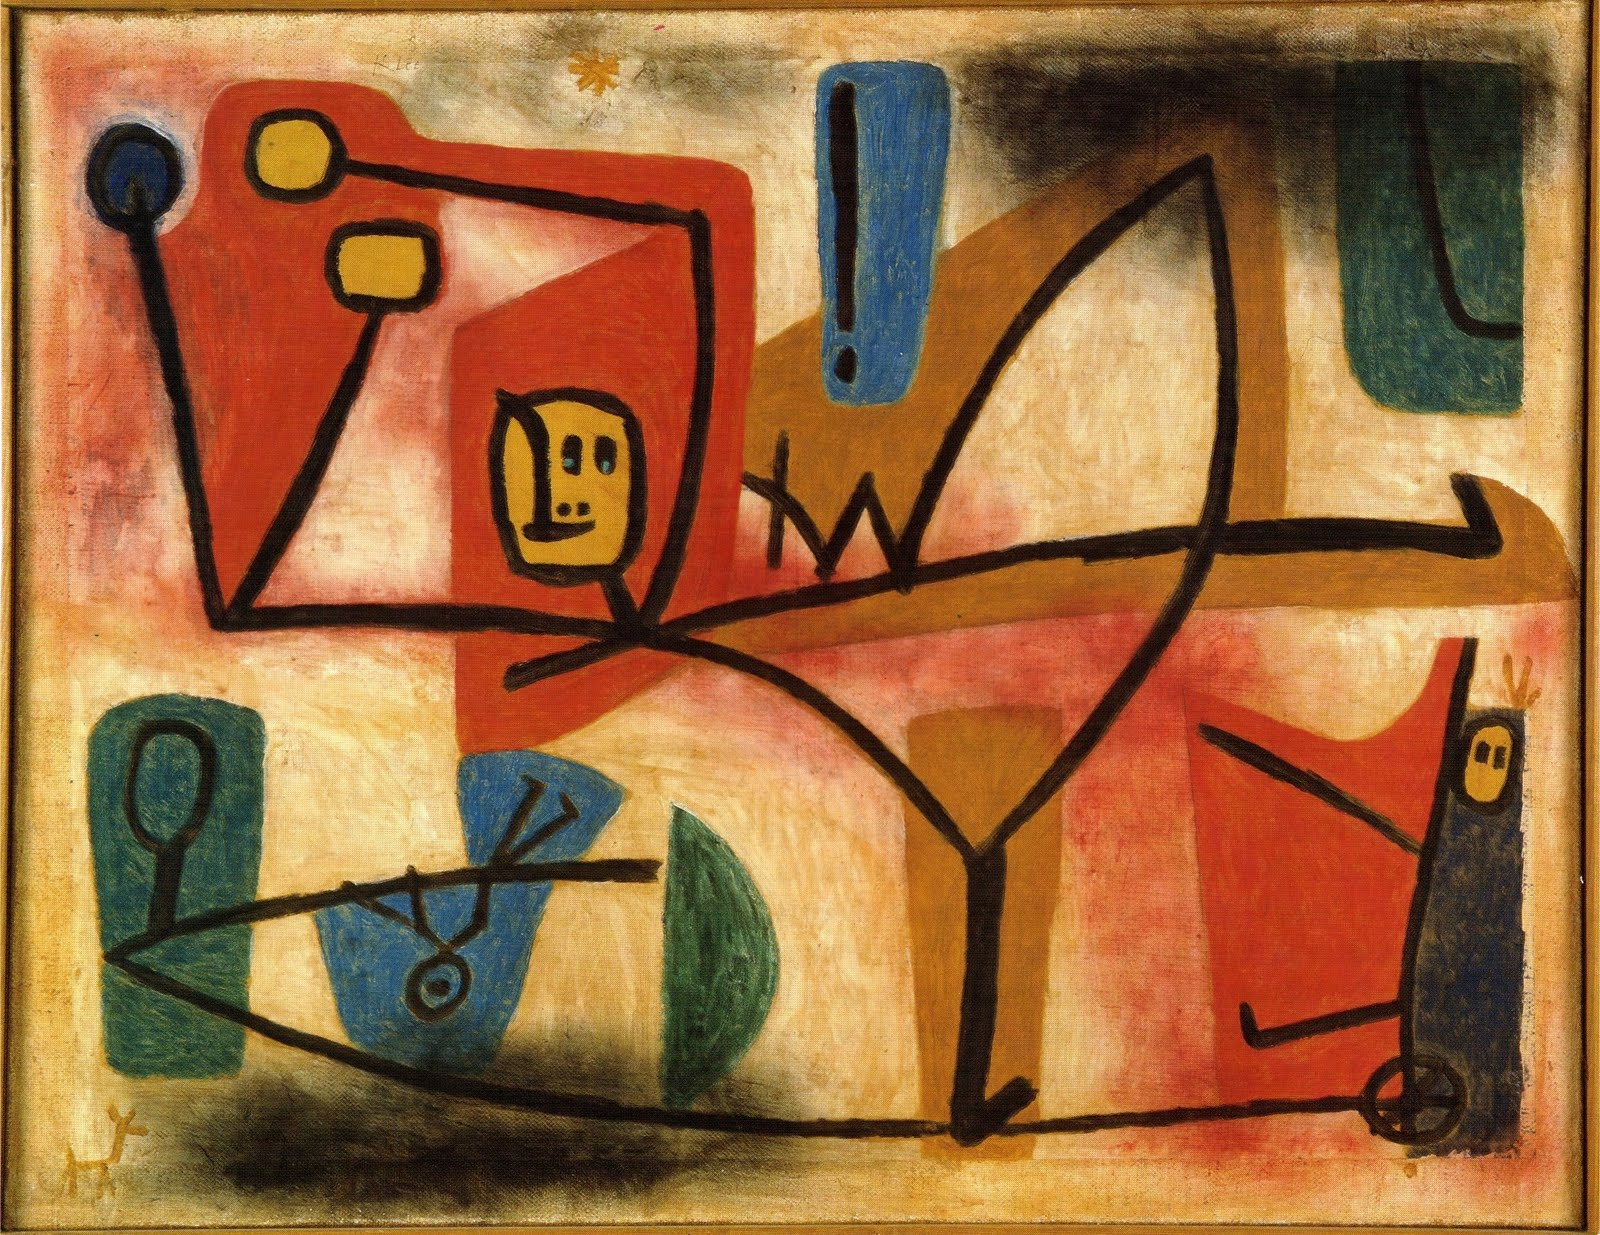 Paul Klee Pinturas Solitary Dog Sculptor I Painter Klee Paul Part 9 Links